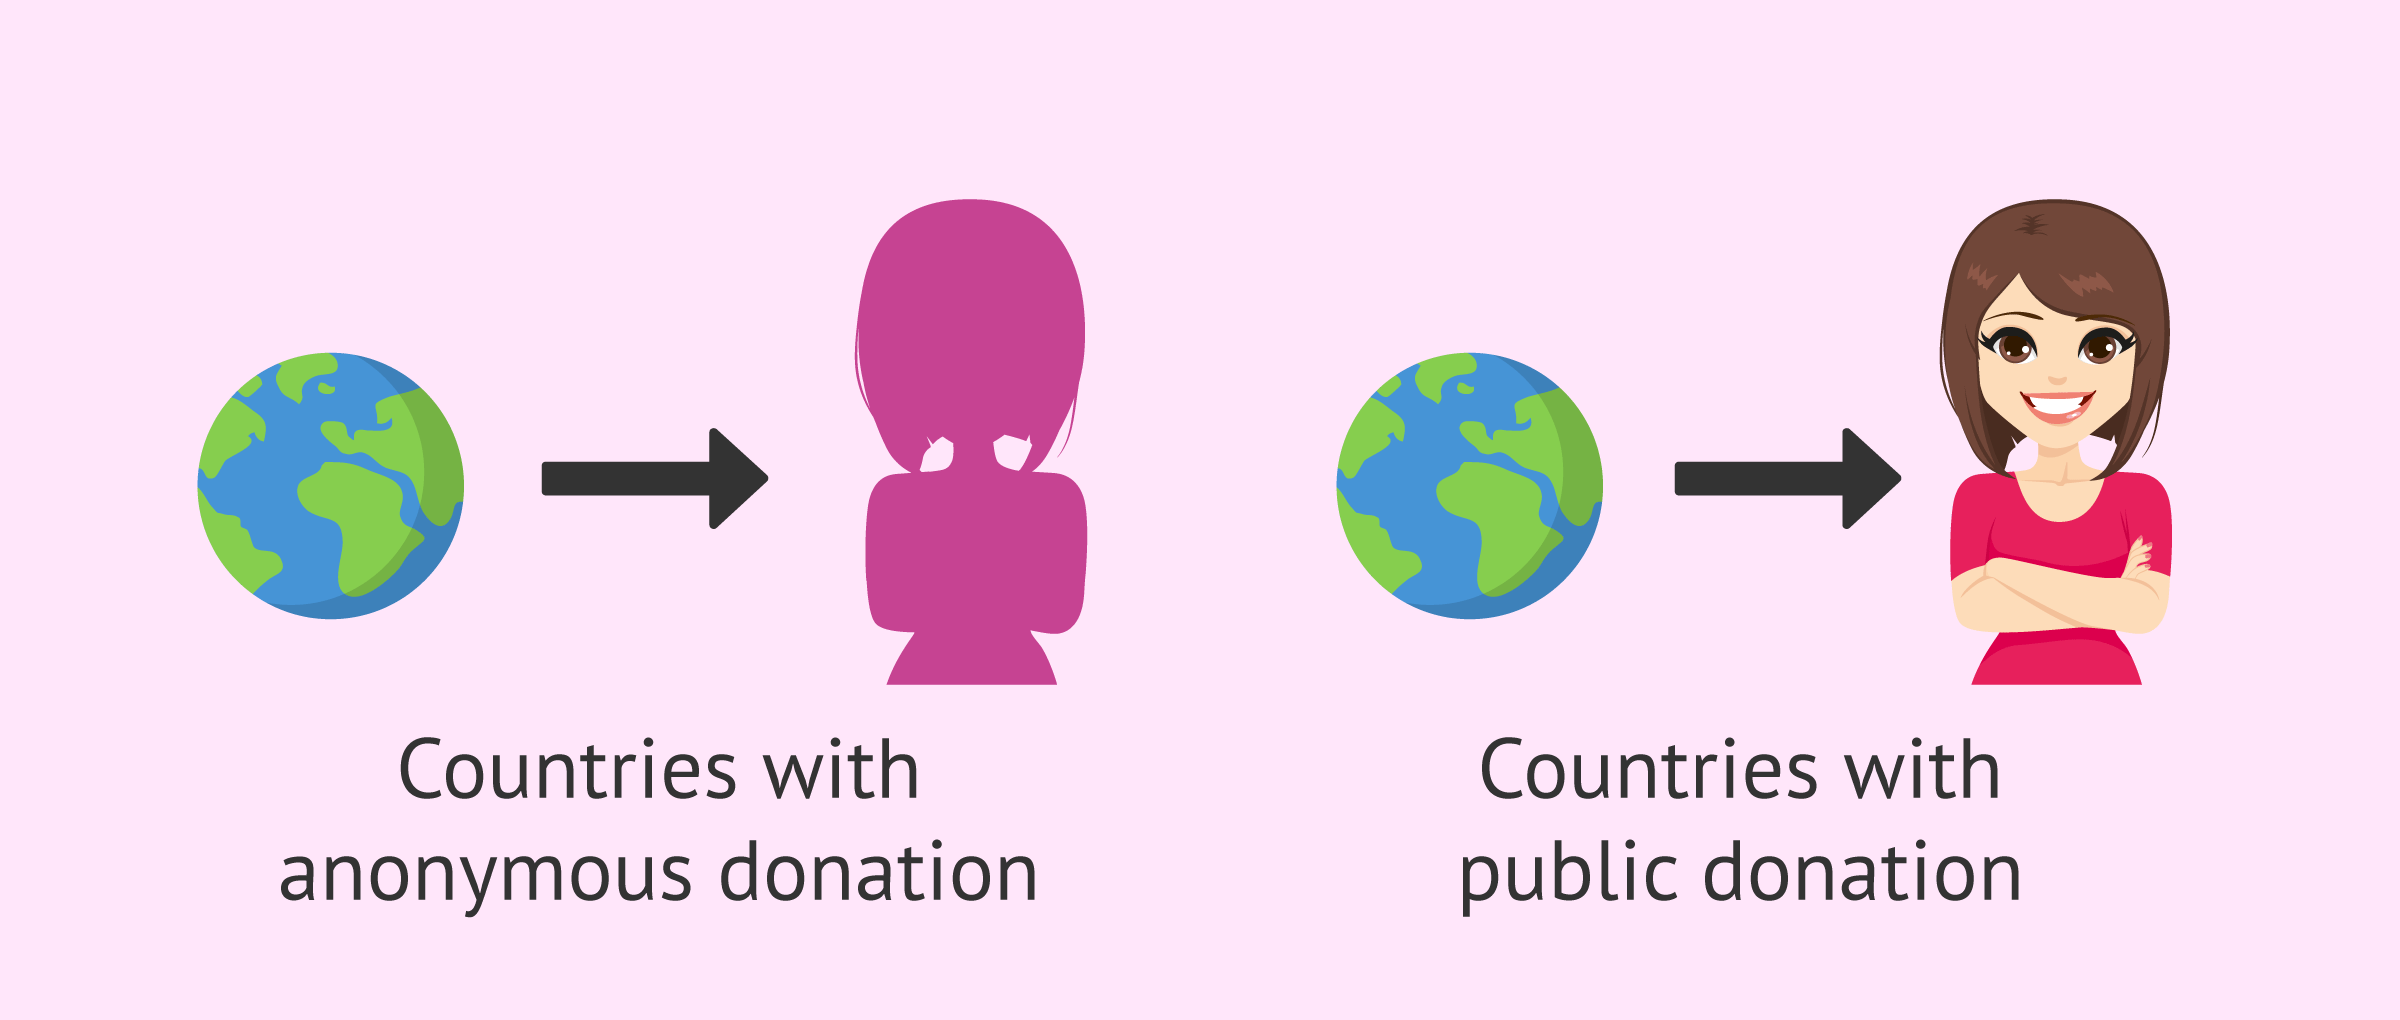 Differences in chosing a donor according to country